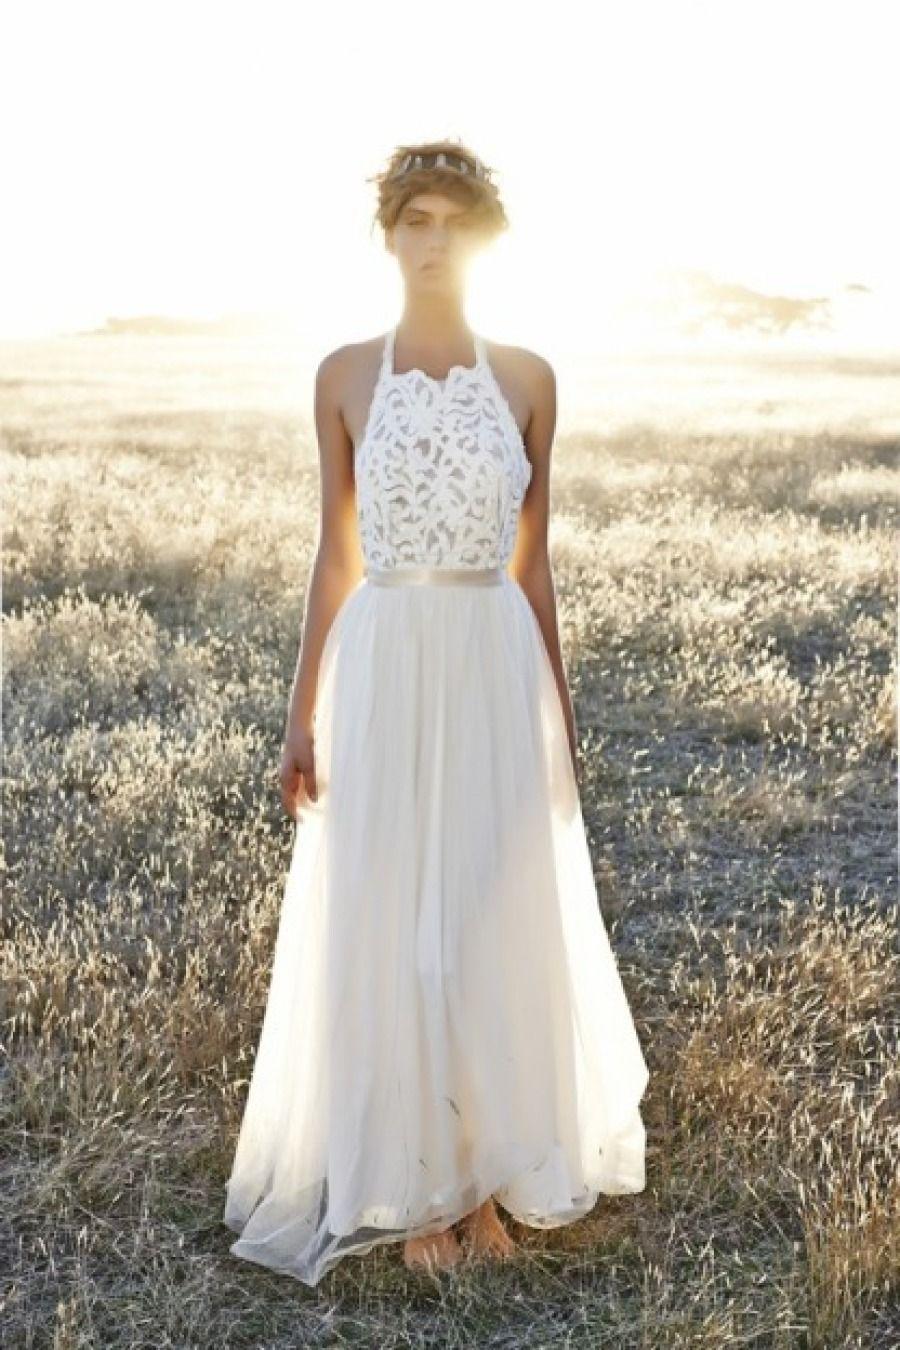 14 Halter Dresses That Will Make You Swoon Wedding Dresses Wedding Dress Cost Boho Wedding Dress